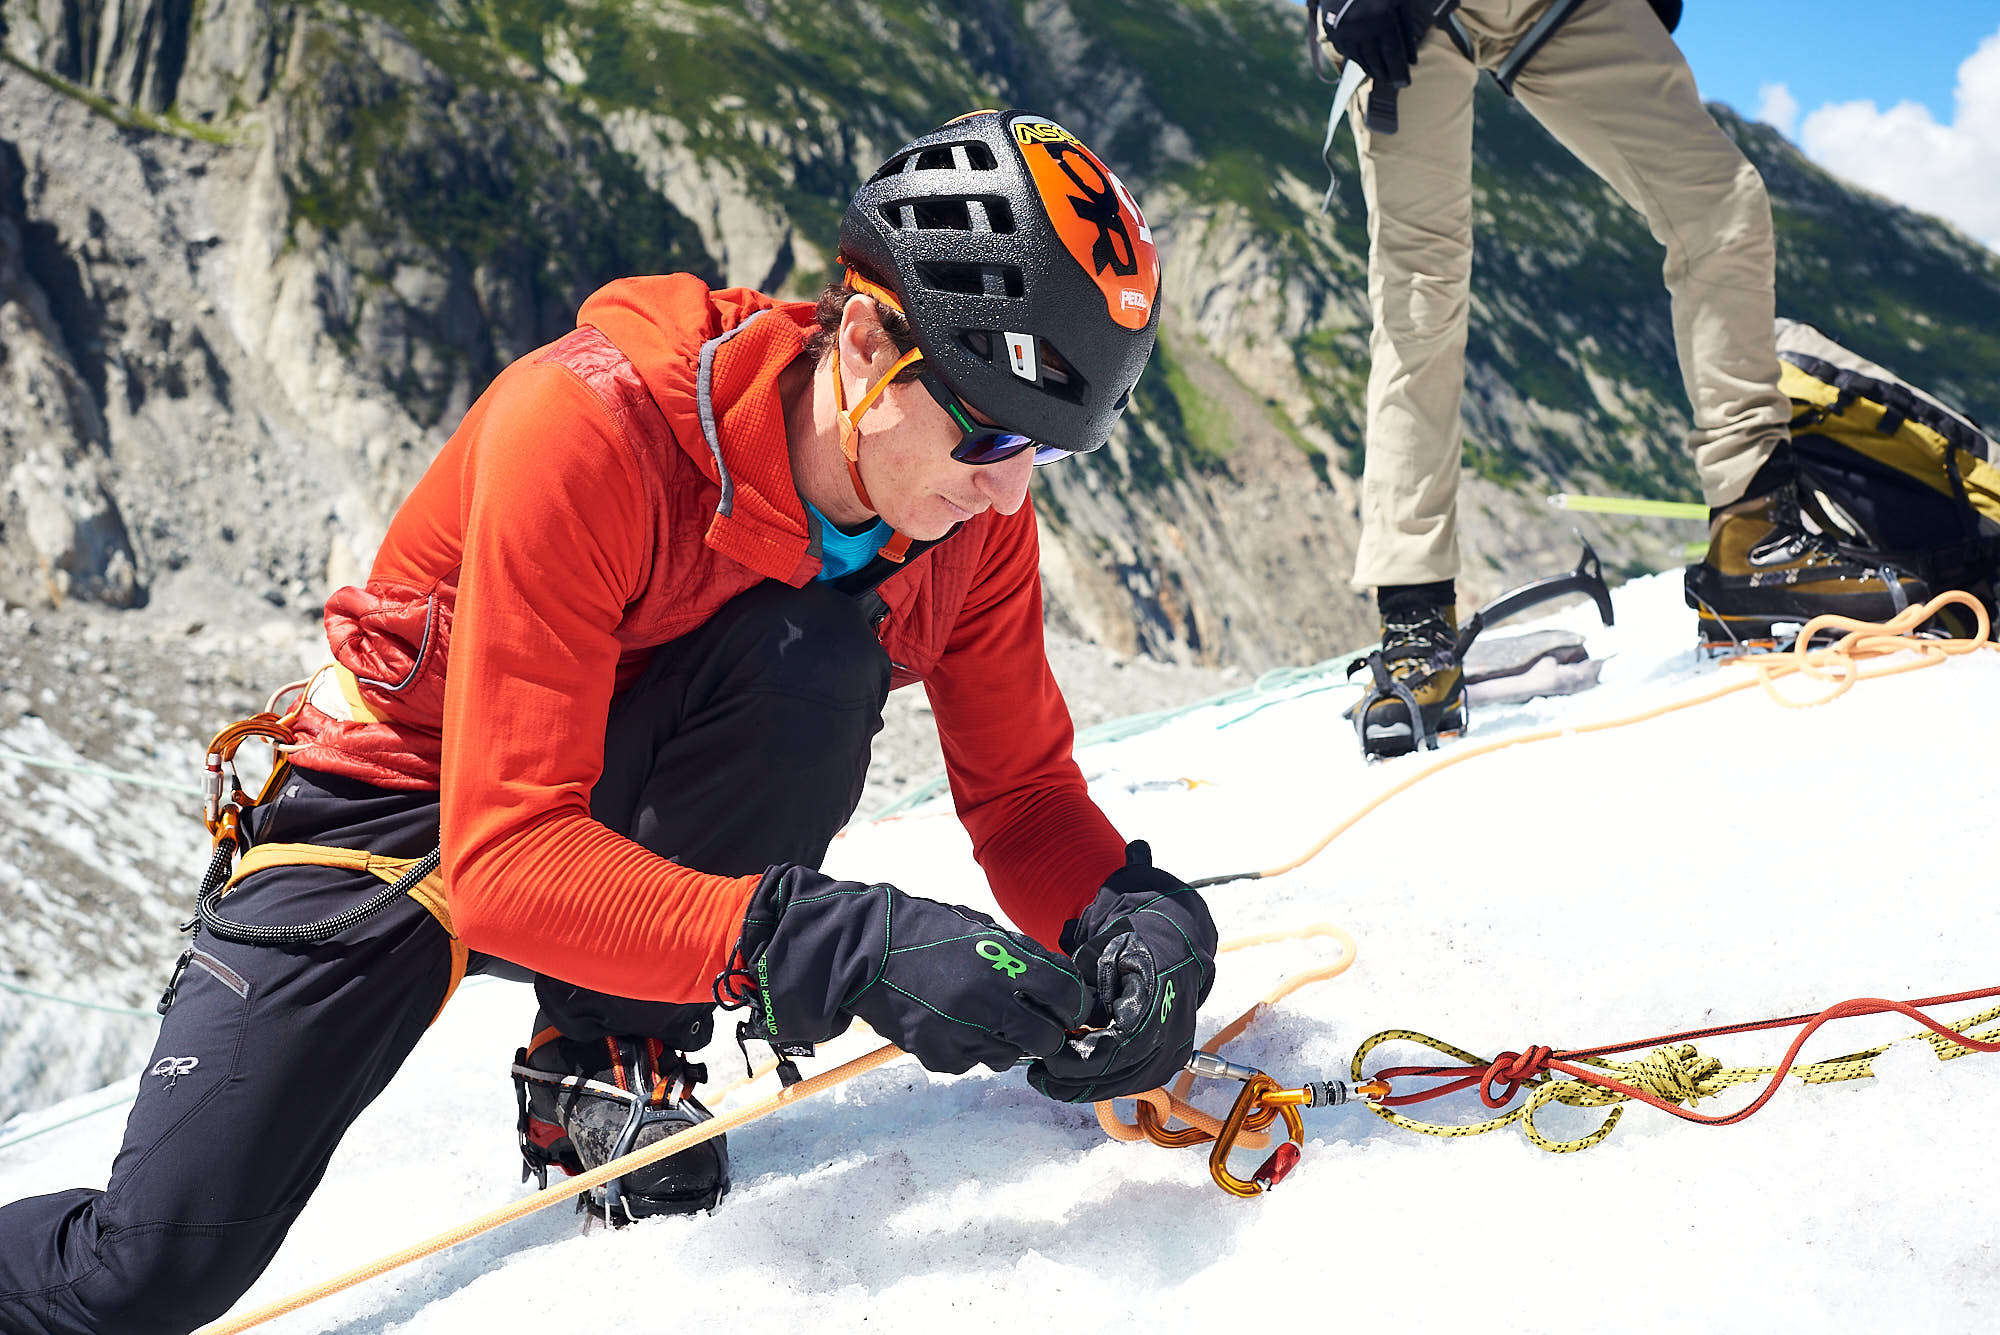 Mountain guide setting up an anchor point on the Mer de Glace glacier